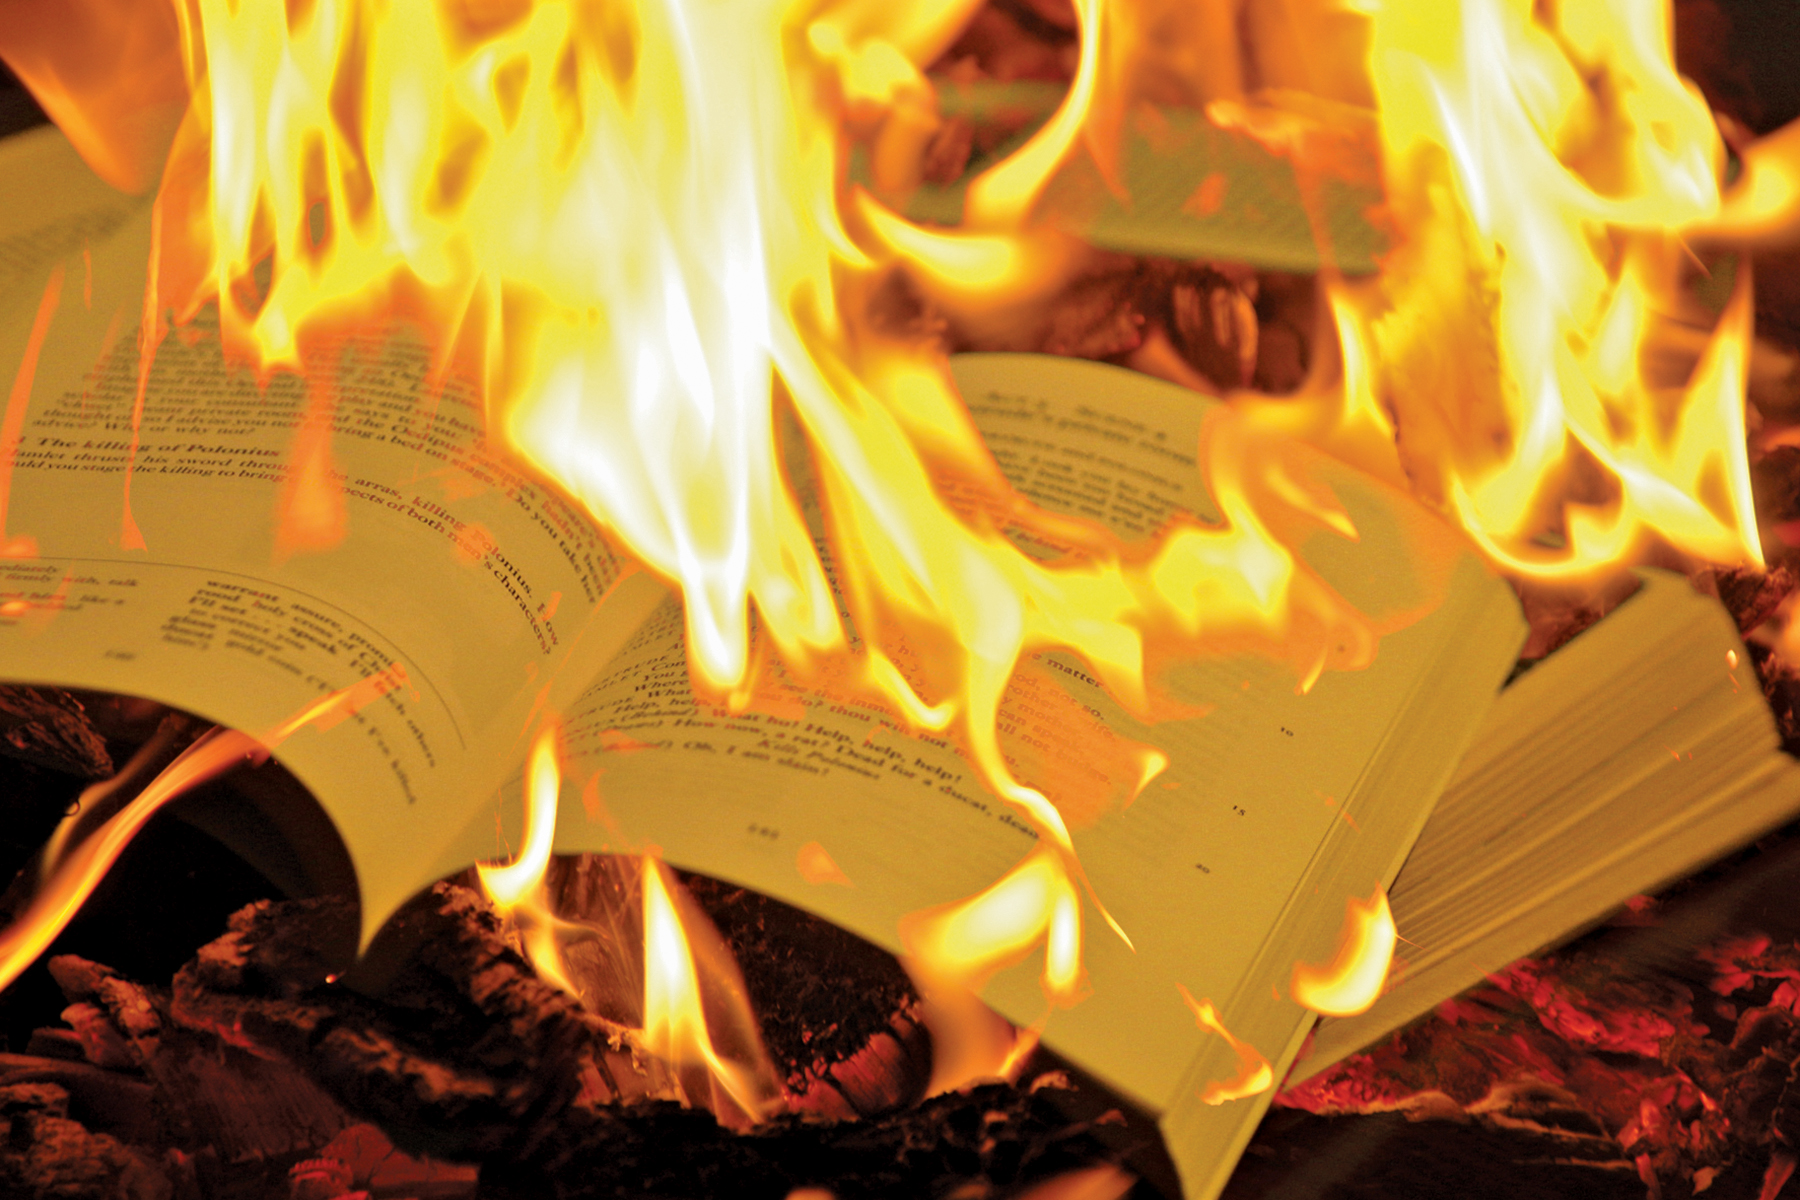 Pair To Be Charged With Hate Crime For Burning Koran.